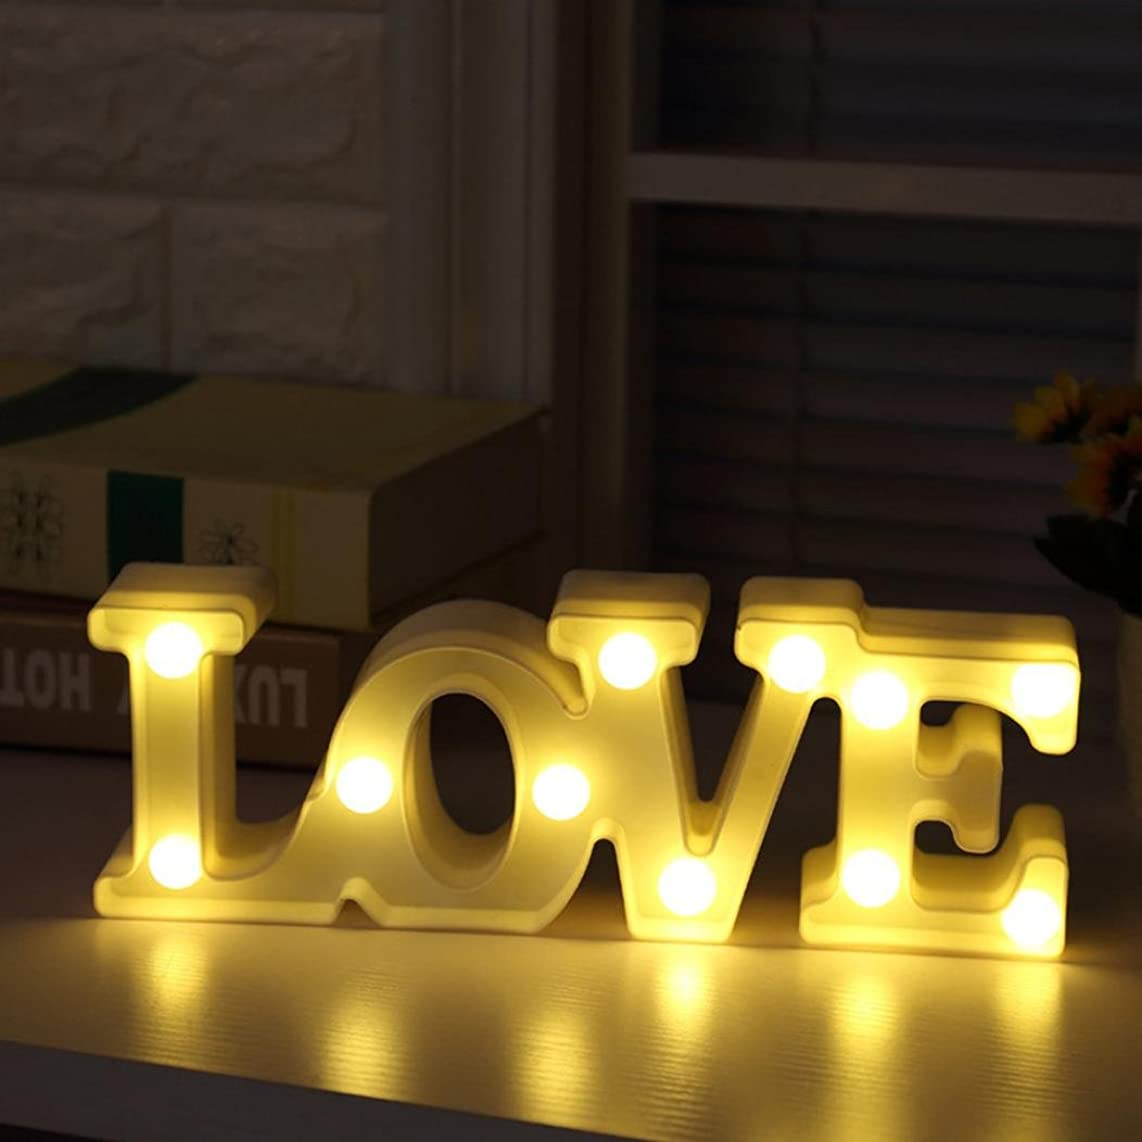 Hongxin LOVE Alphabet Letters LED Marquee Sign Night Light For Wedding Decor Alphabet Light Indoor Wall Decoration Light Up Standing Hanging (white)